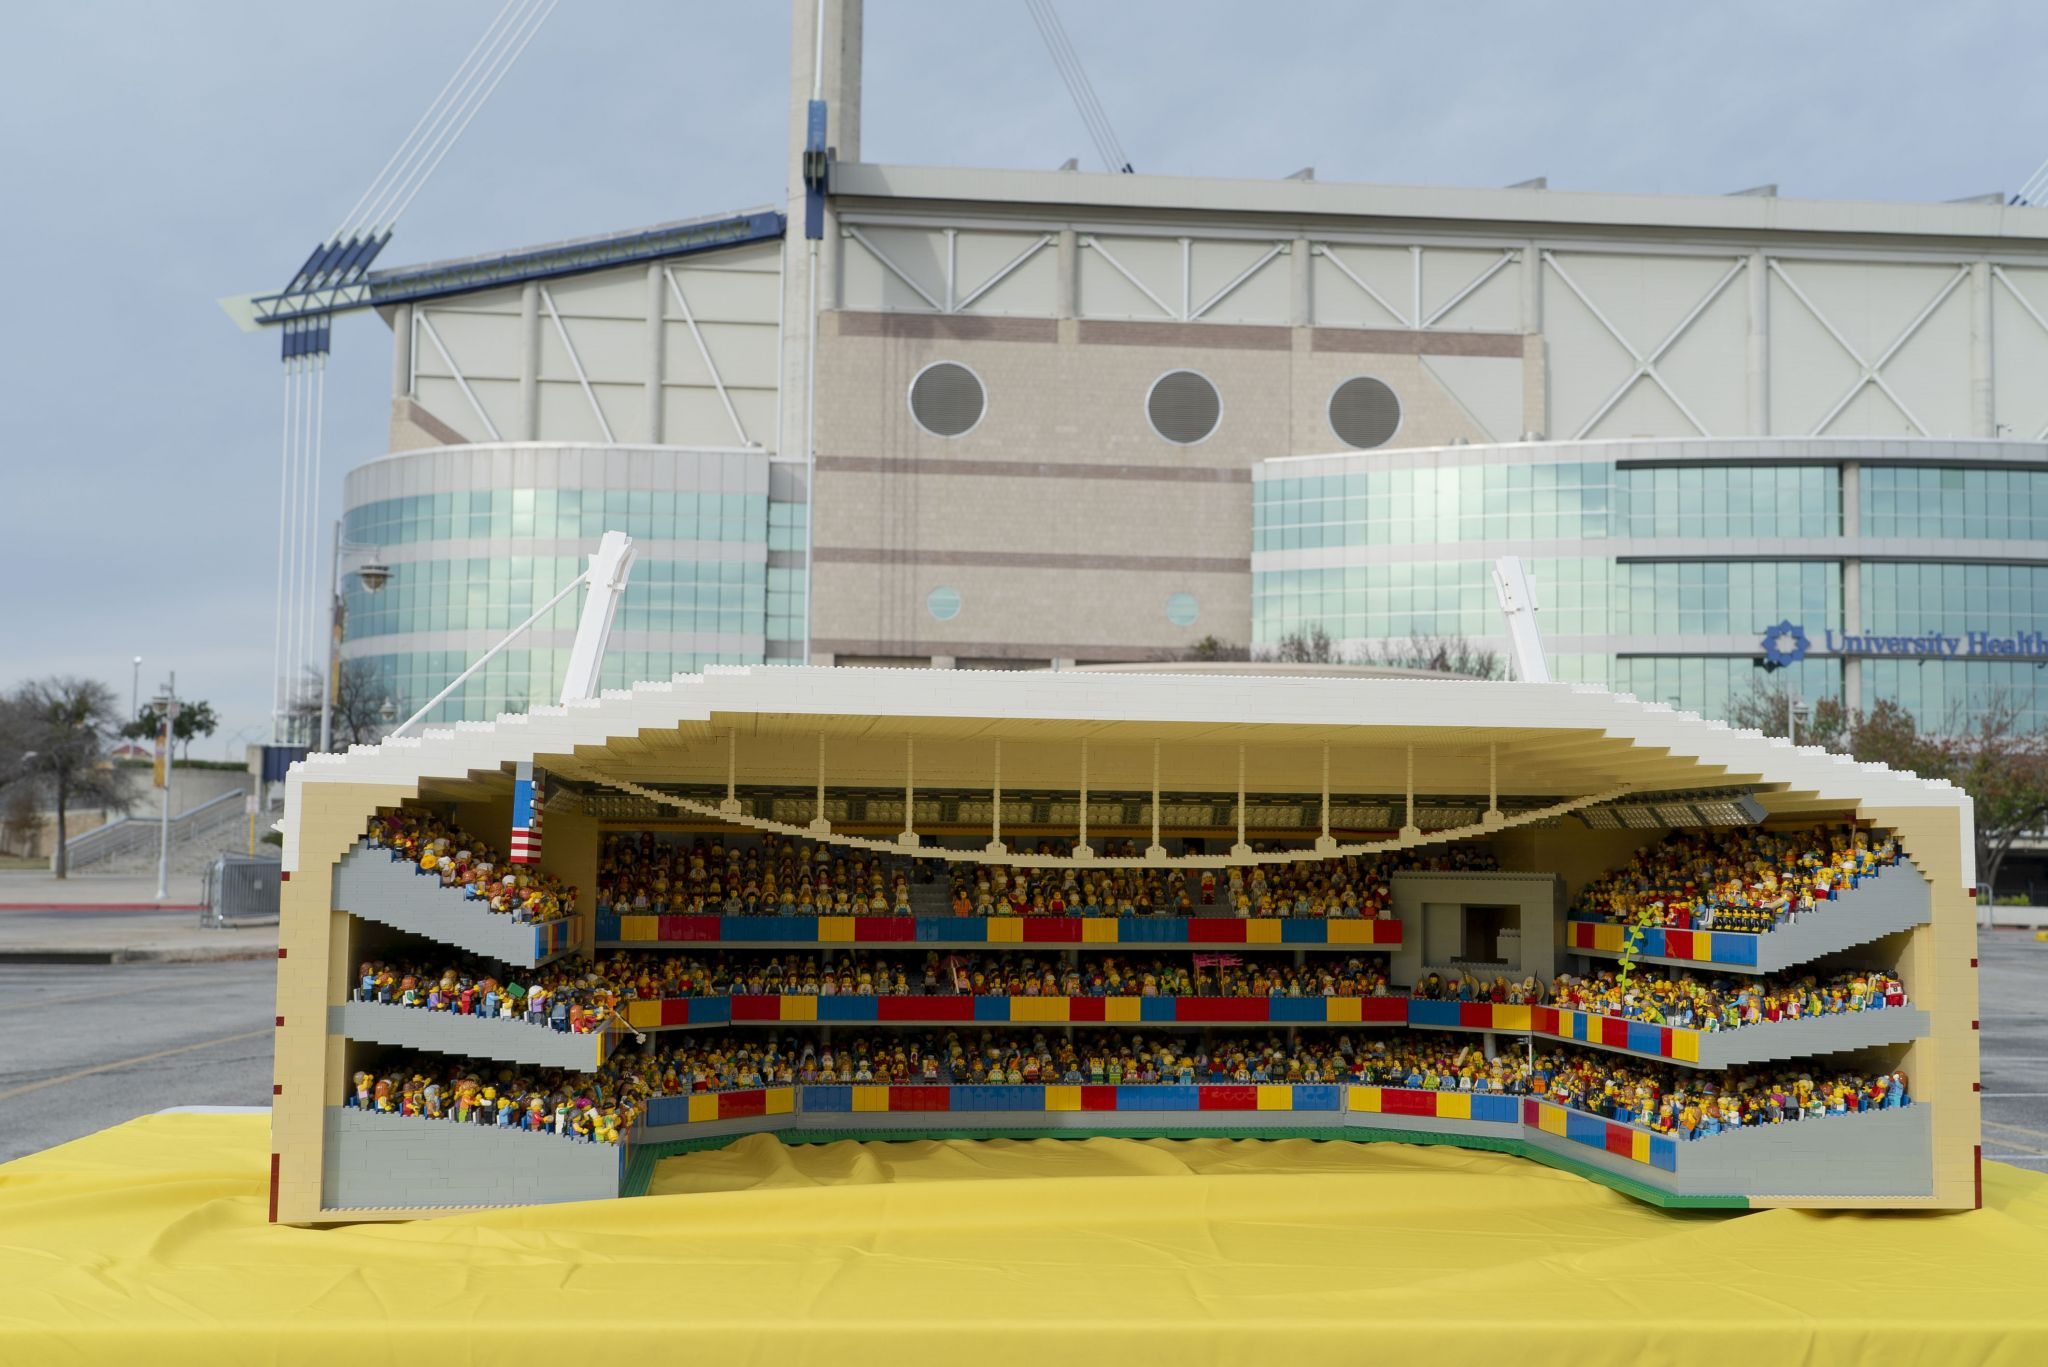 First Look Upcoming Legoland Discovery Center Best